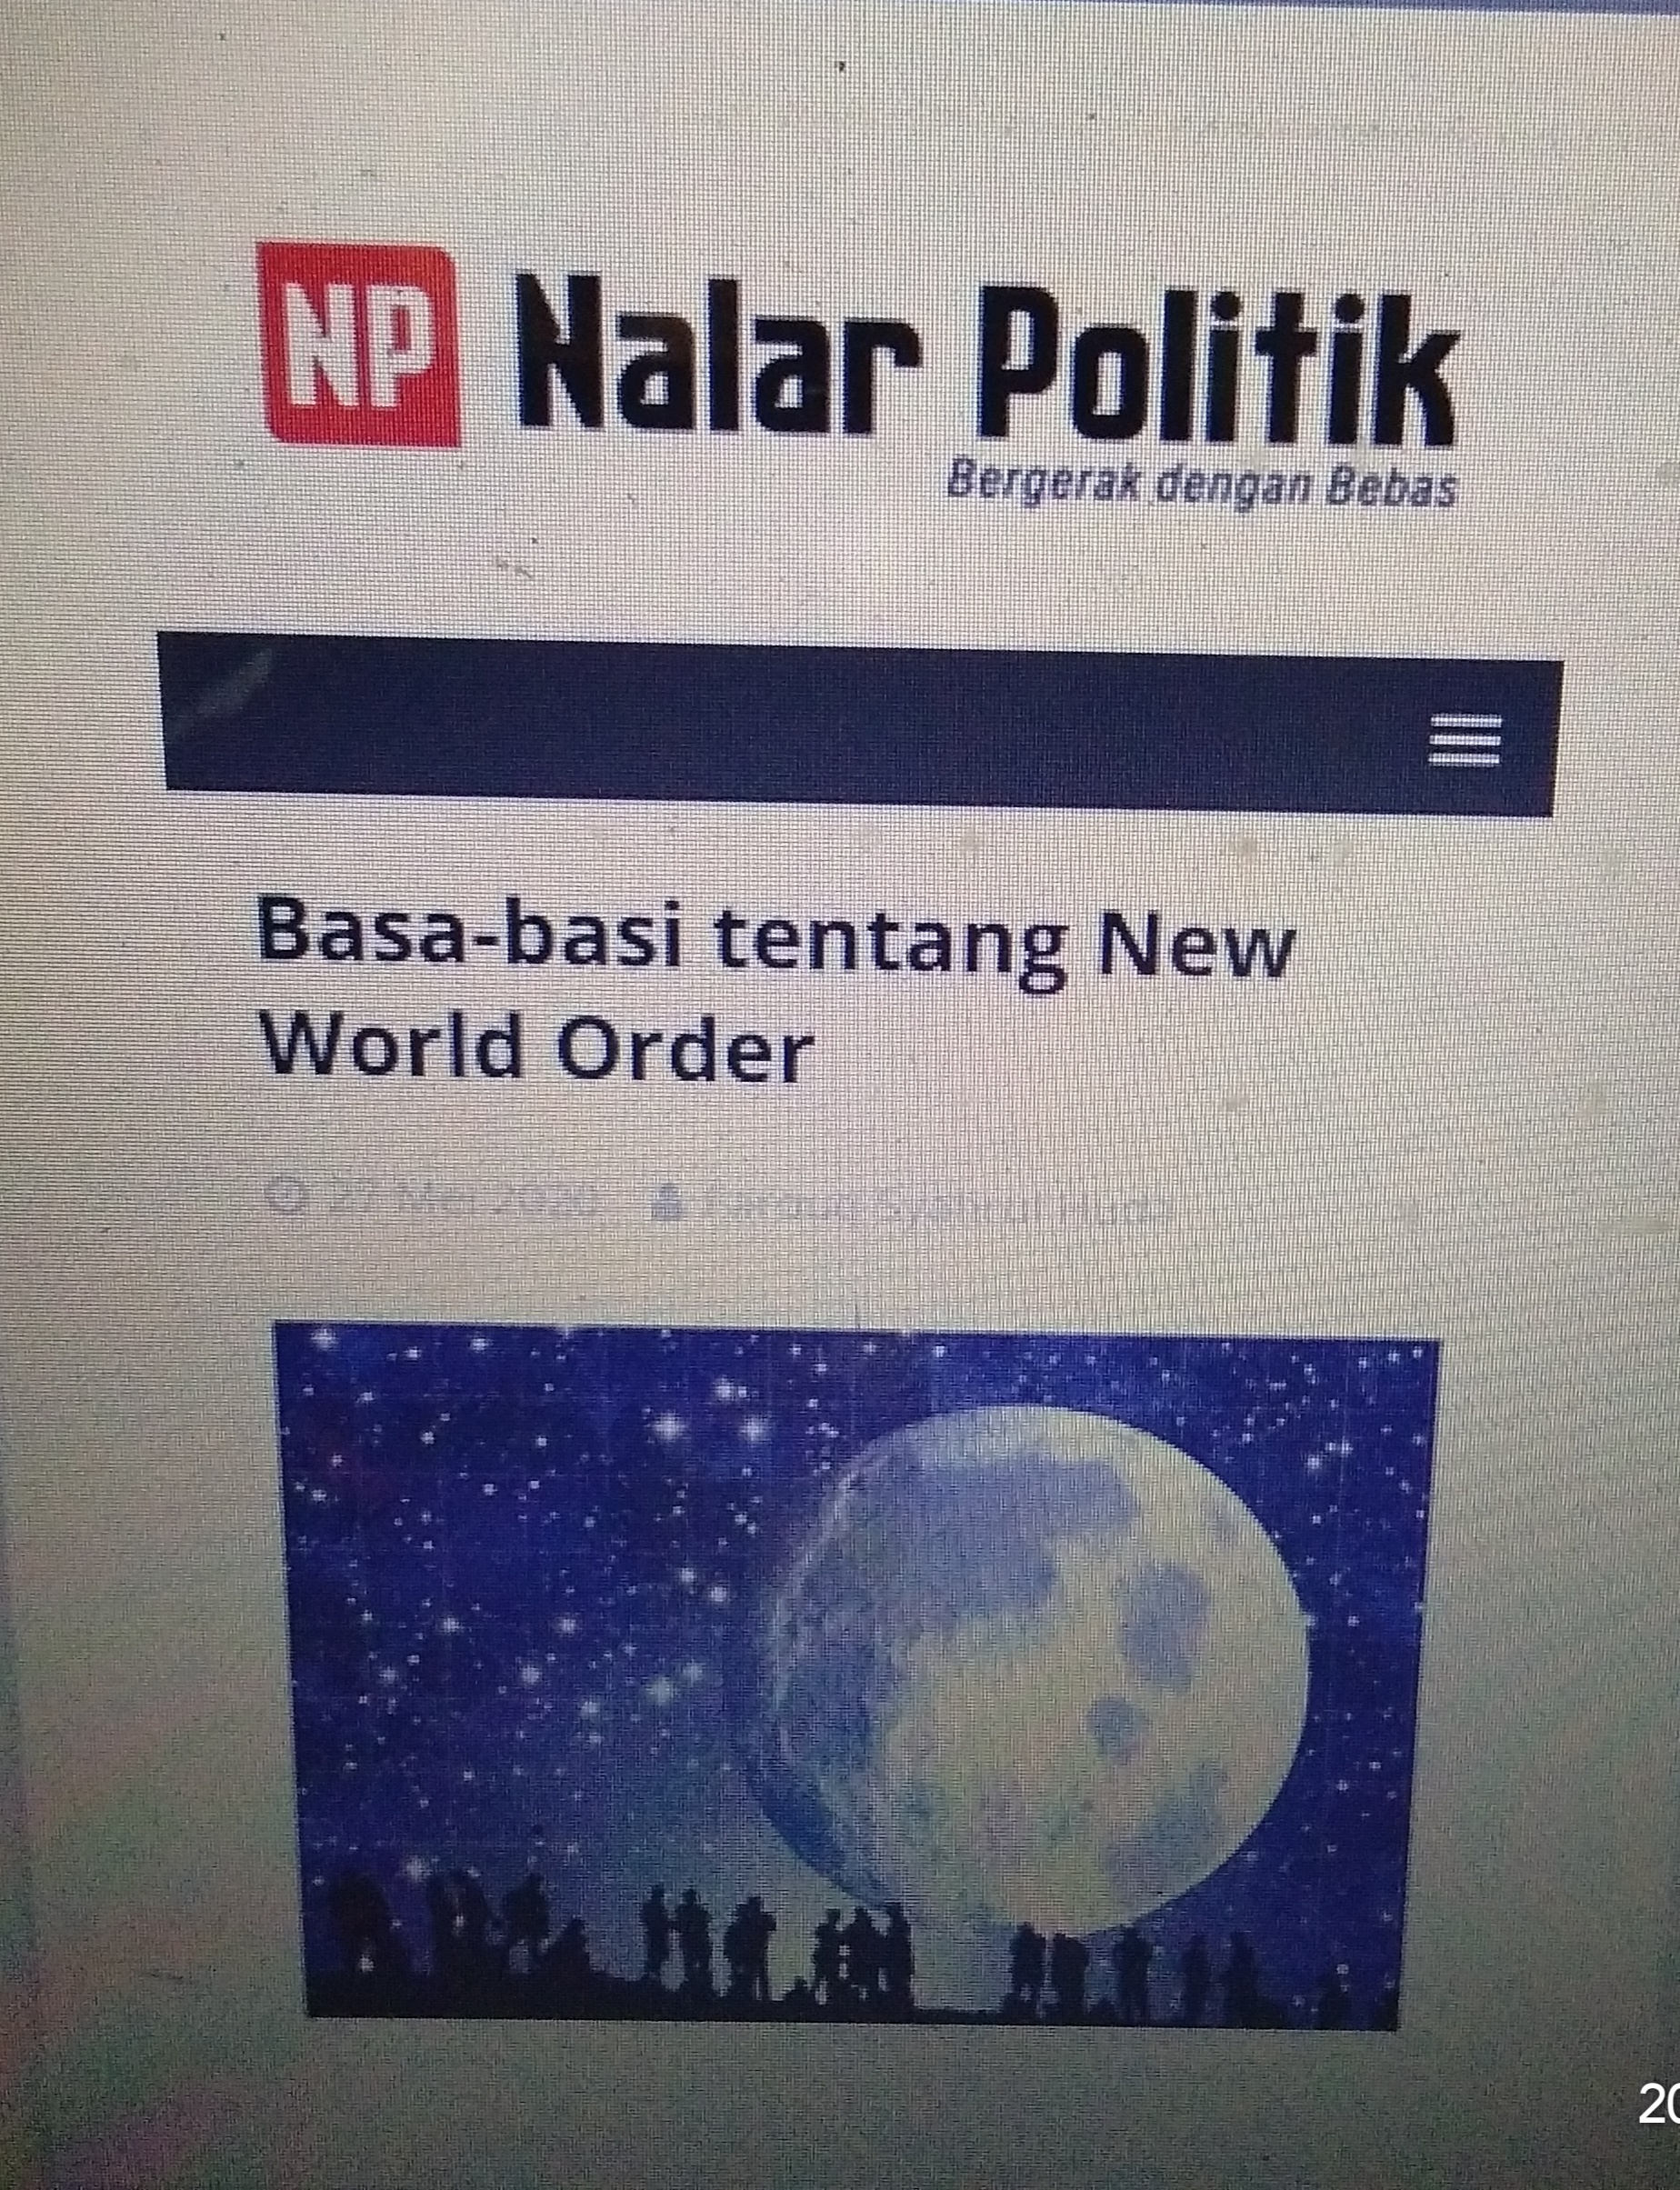 Basa-basi tentang New World Order